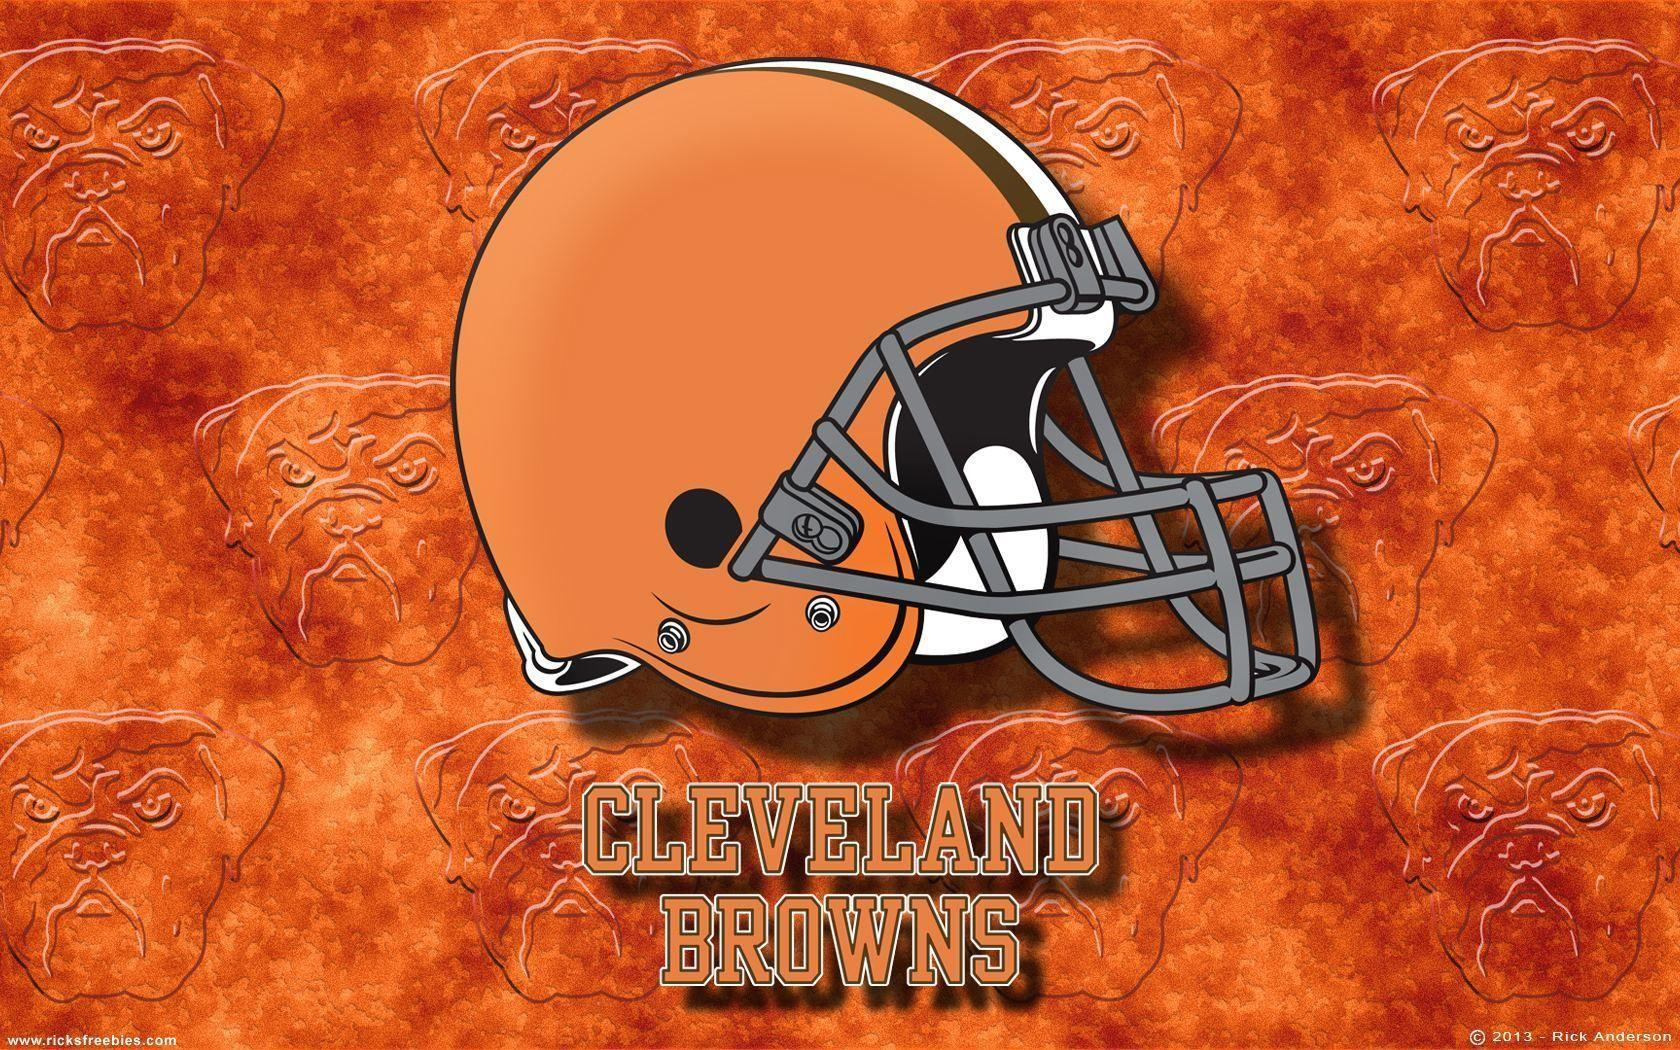 Cleveland Browns Wallpaper 4 - 1680 X 1050 | stmed.net